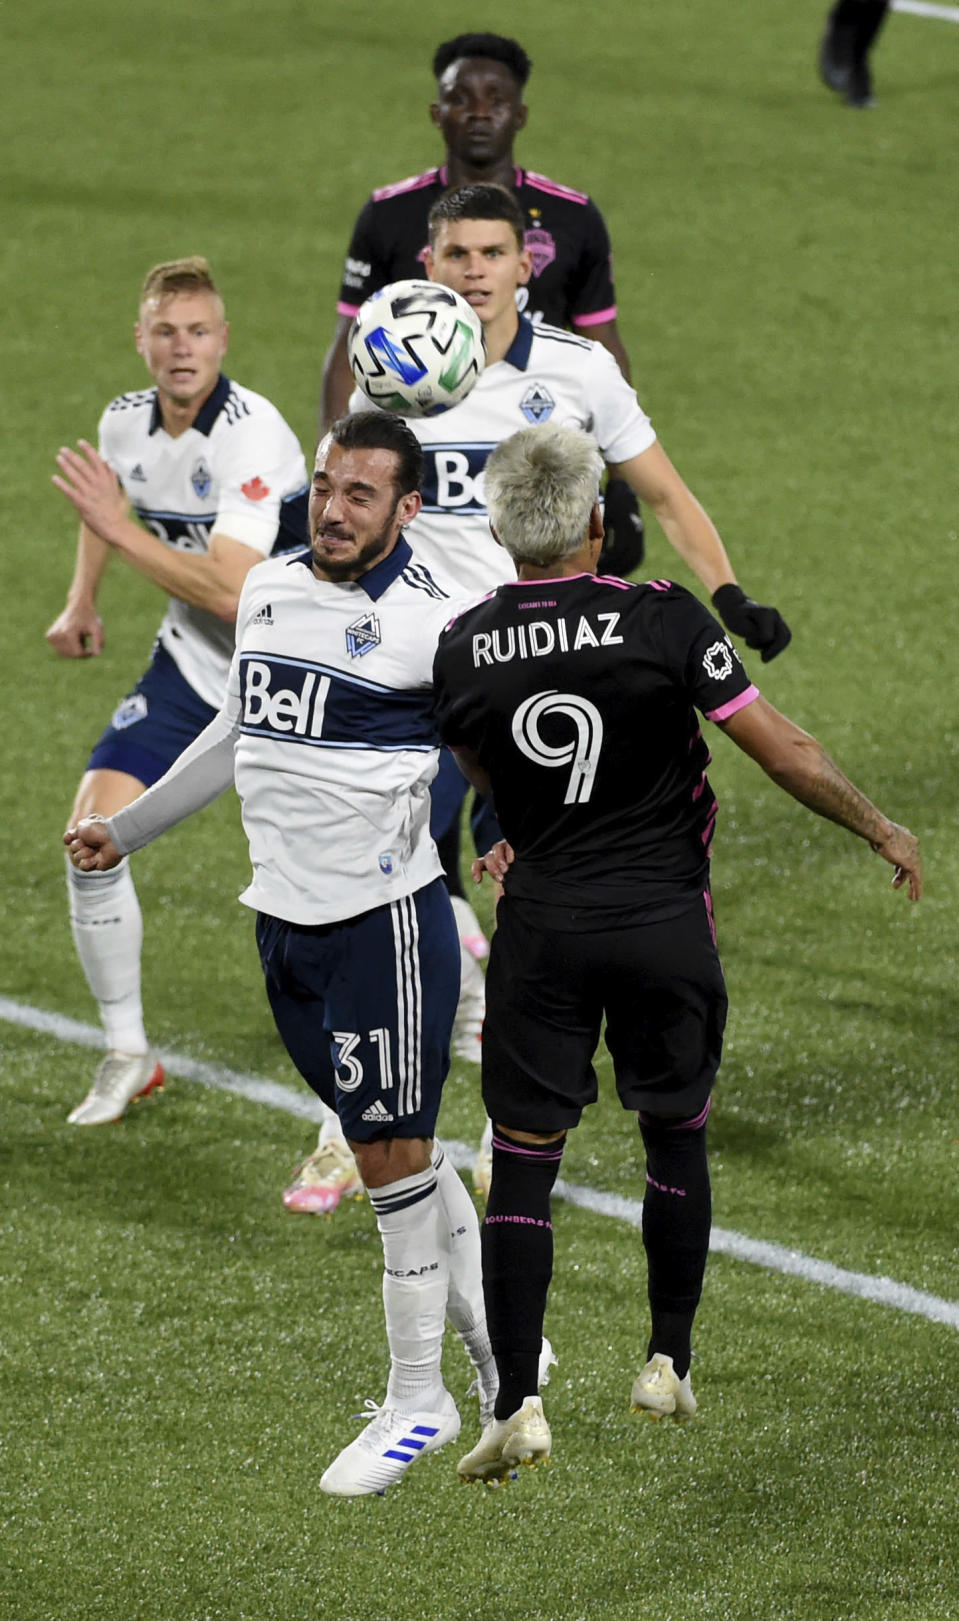 Vancouver Whitecaps midfielder Russell Teibert, left, and Seattle Sounders forward Raul Ruidiaz jump for a head ball during the first half of an MLS soccer match in Portland, Ore., Tuesday, Oct. 27, 2020. (AP Photo/Steve Dykes)